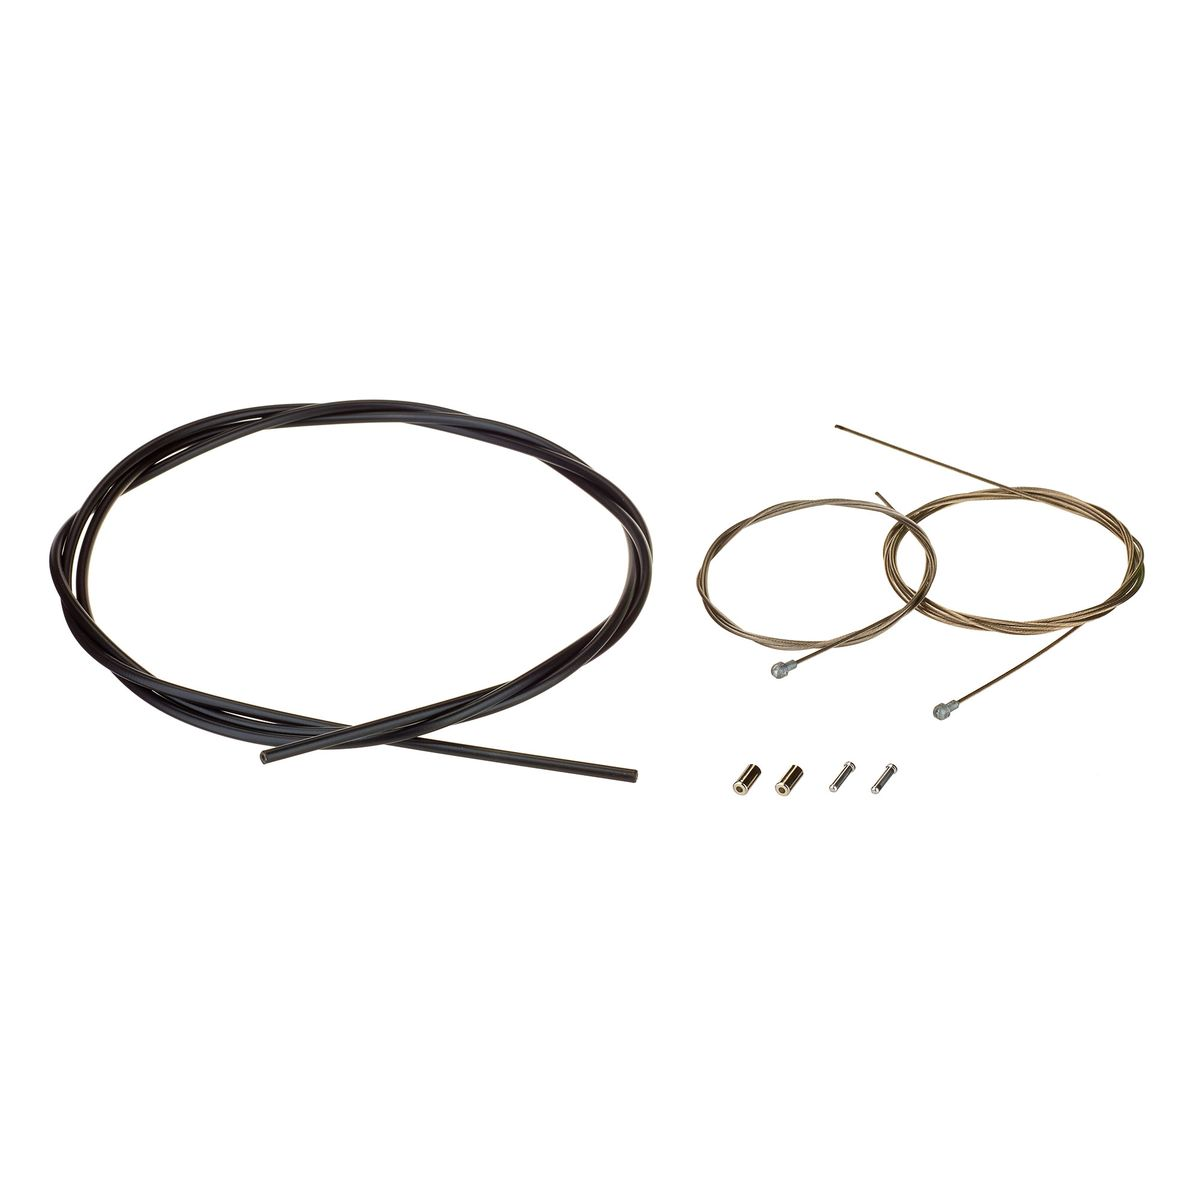 road brake cable set